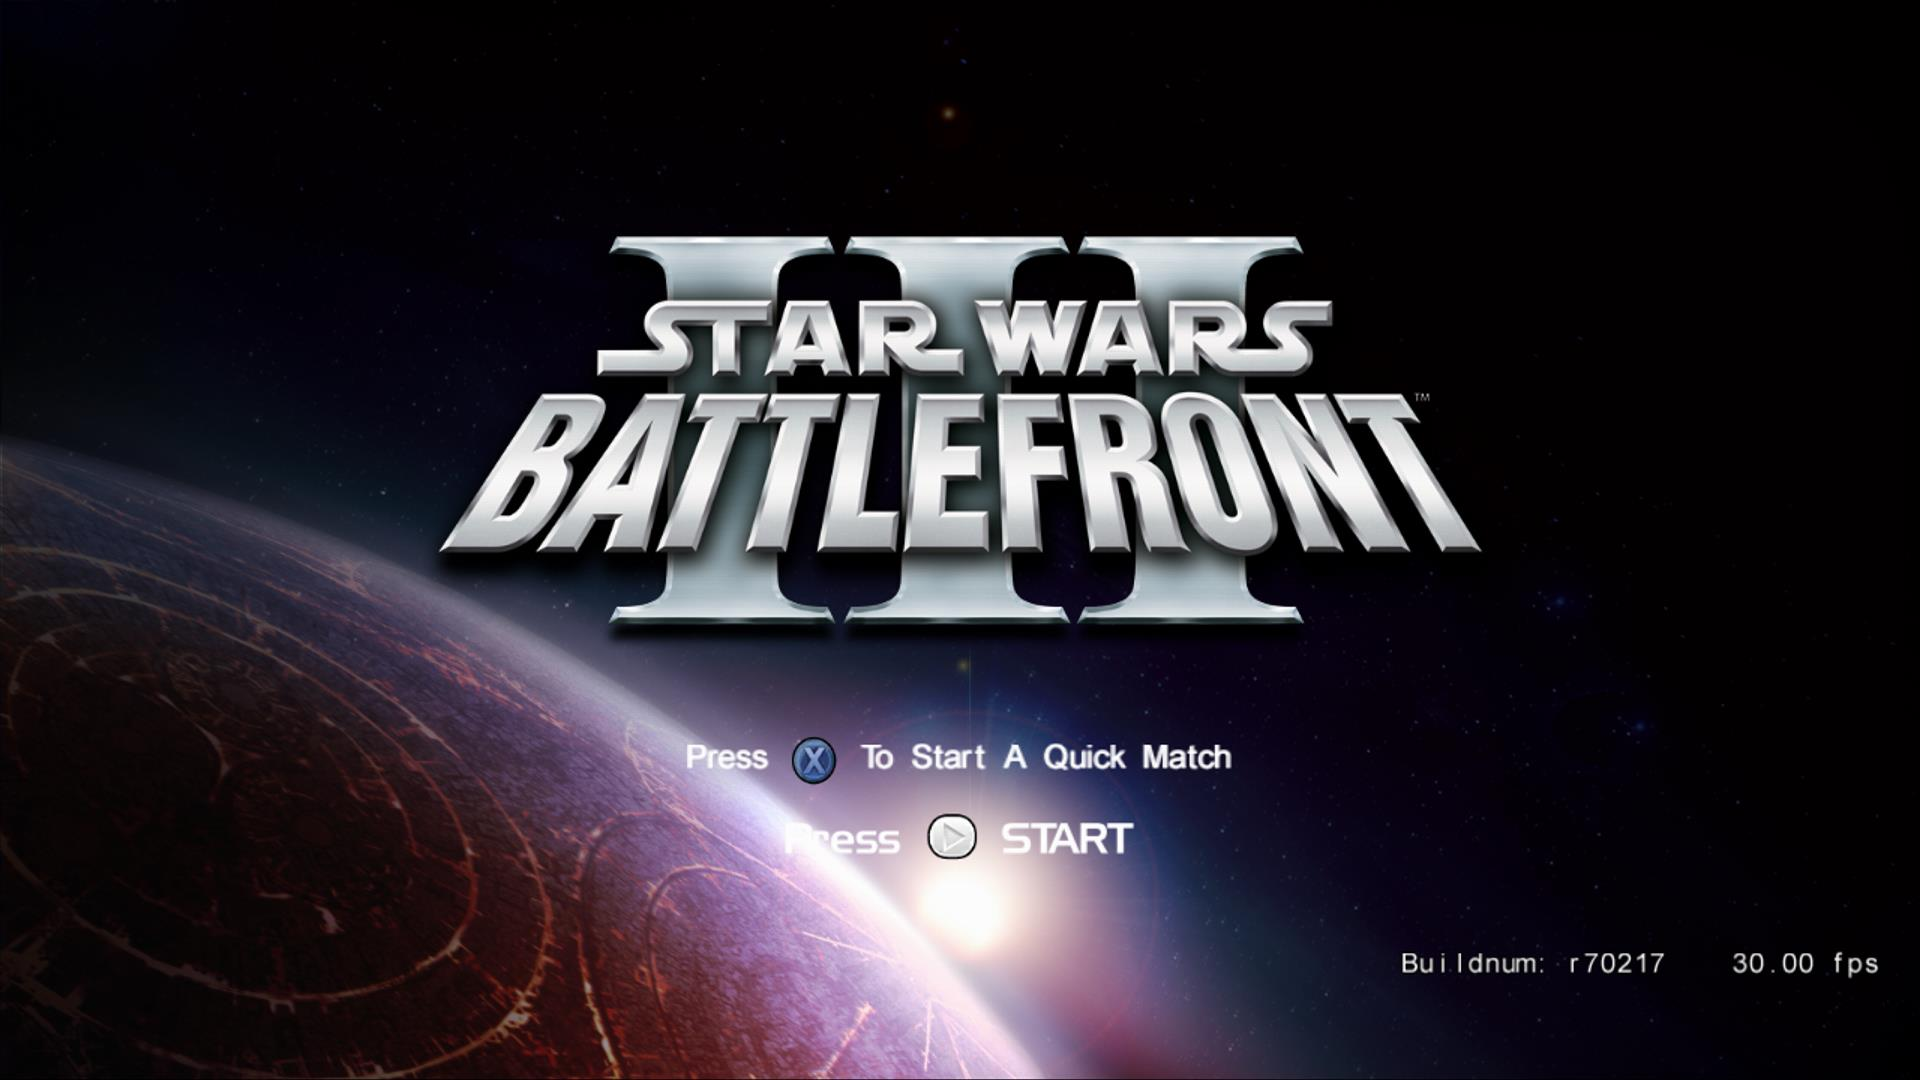 Upcoming Free Star Wars Battlefront DLC Details Revealed